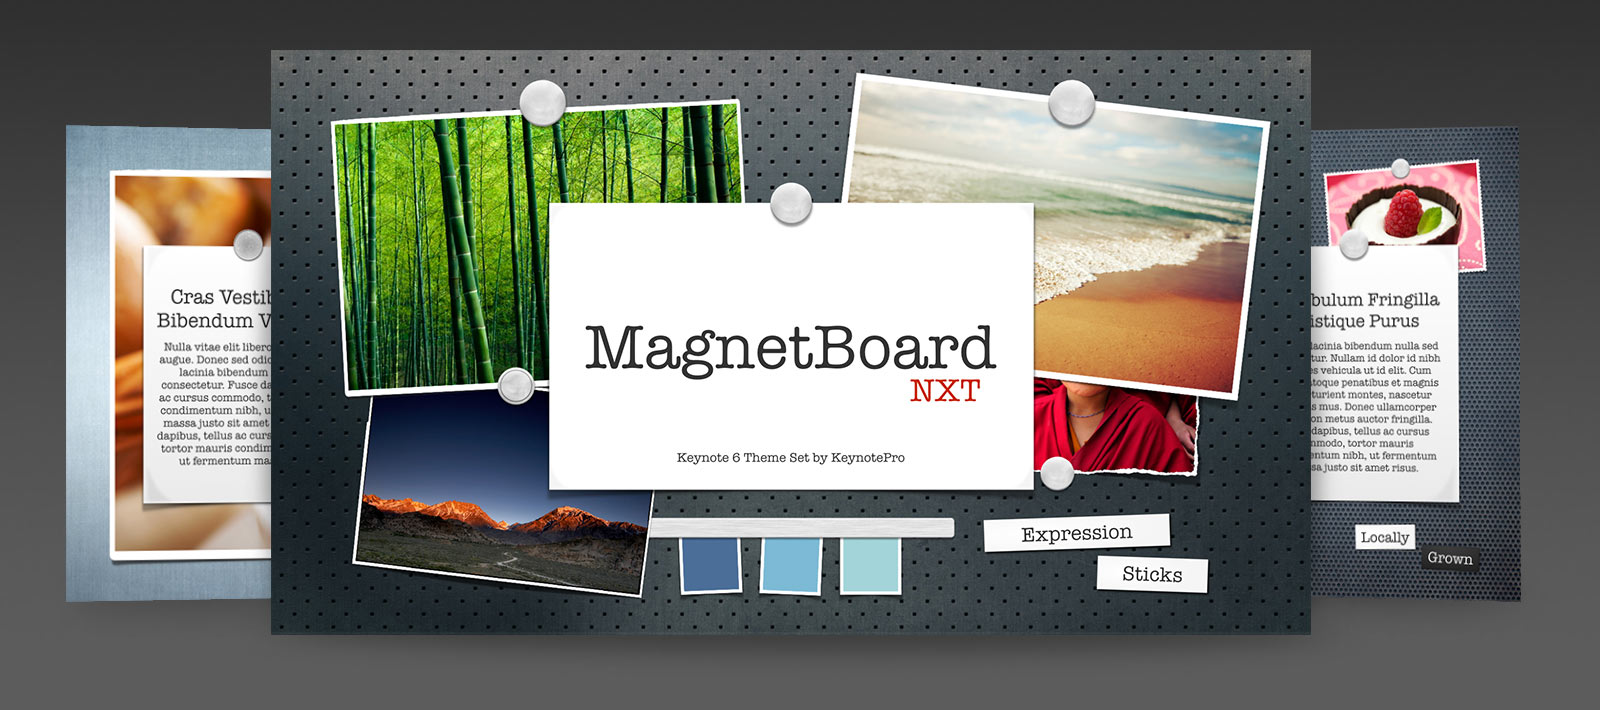 MagnetBoard NXT Preview